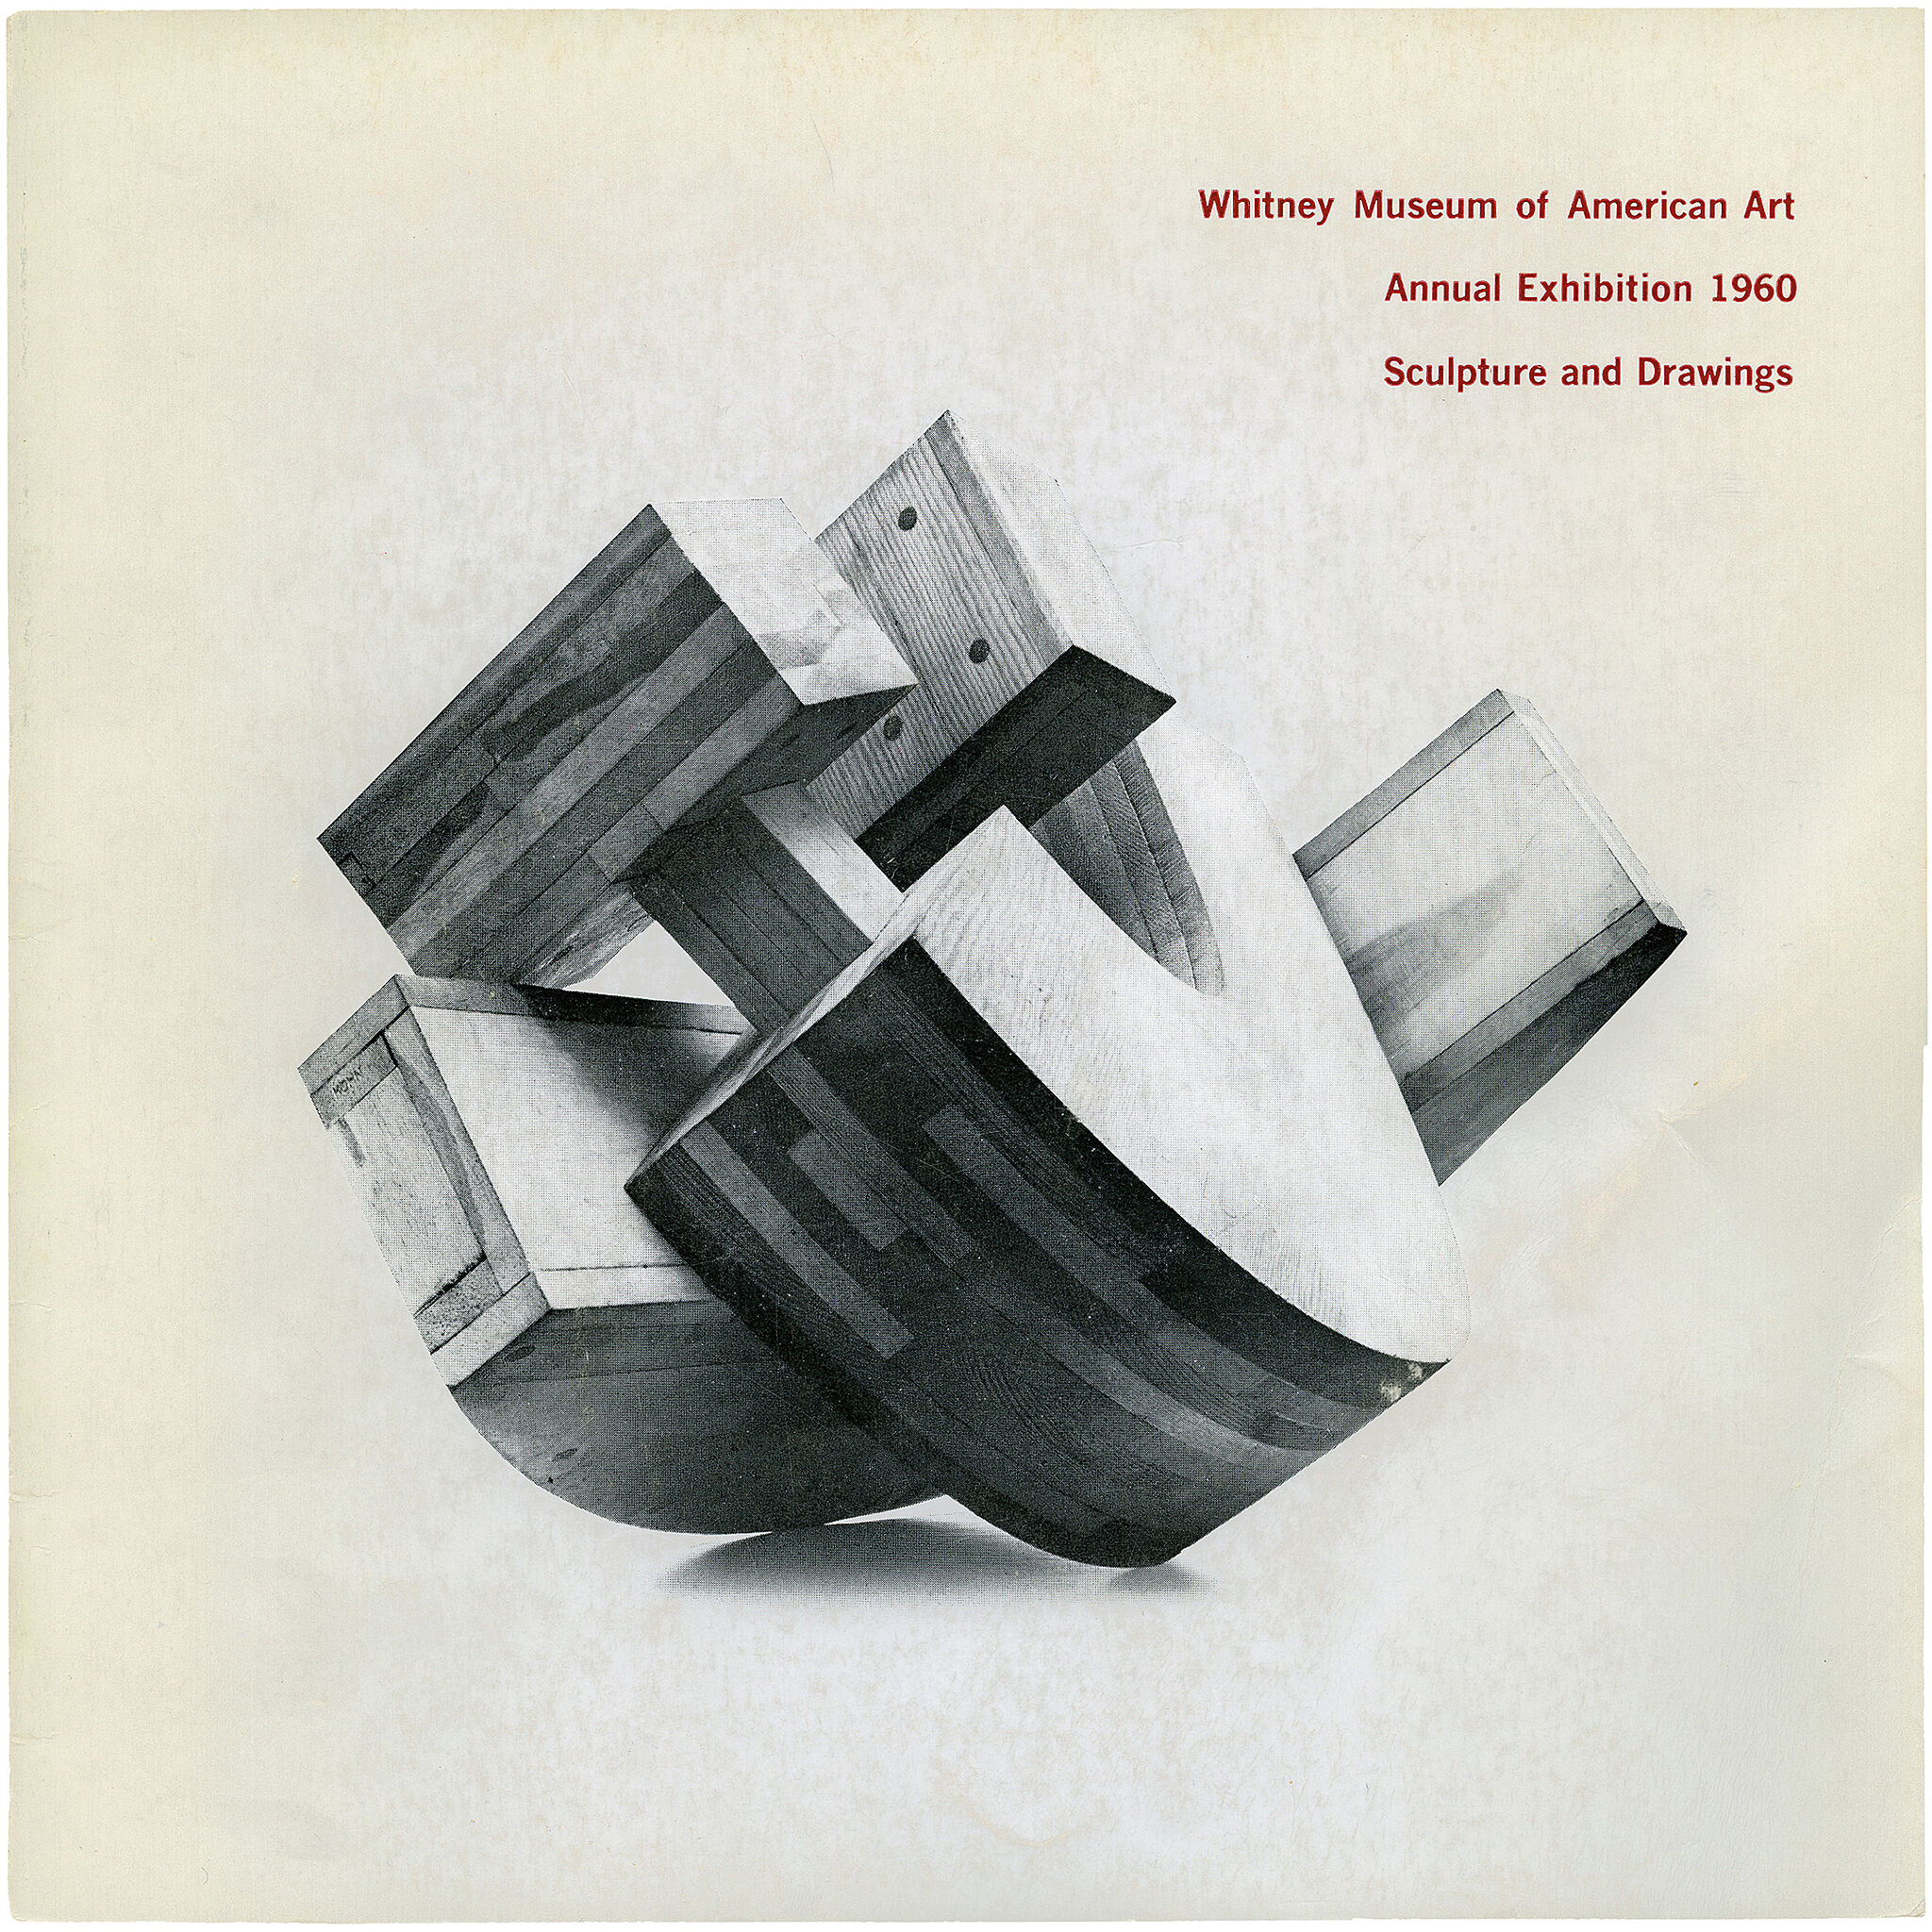 Catalogue cover for Annual Exhibition 1960: Contemporary Sculpture and Drawings